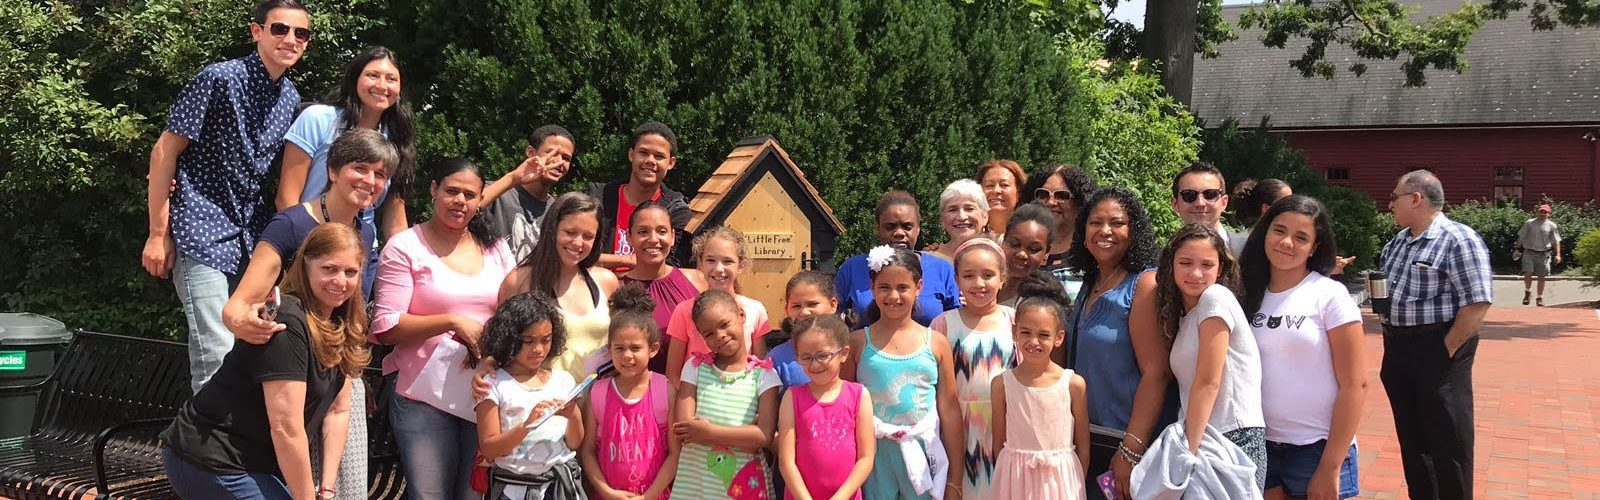 2018 Caribbean Connections students and the new Little Free Library at The House of the Seven Gables